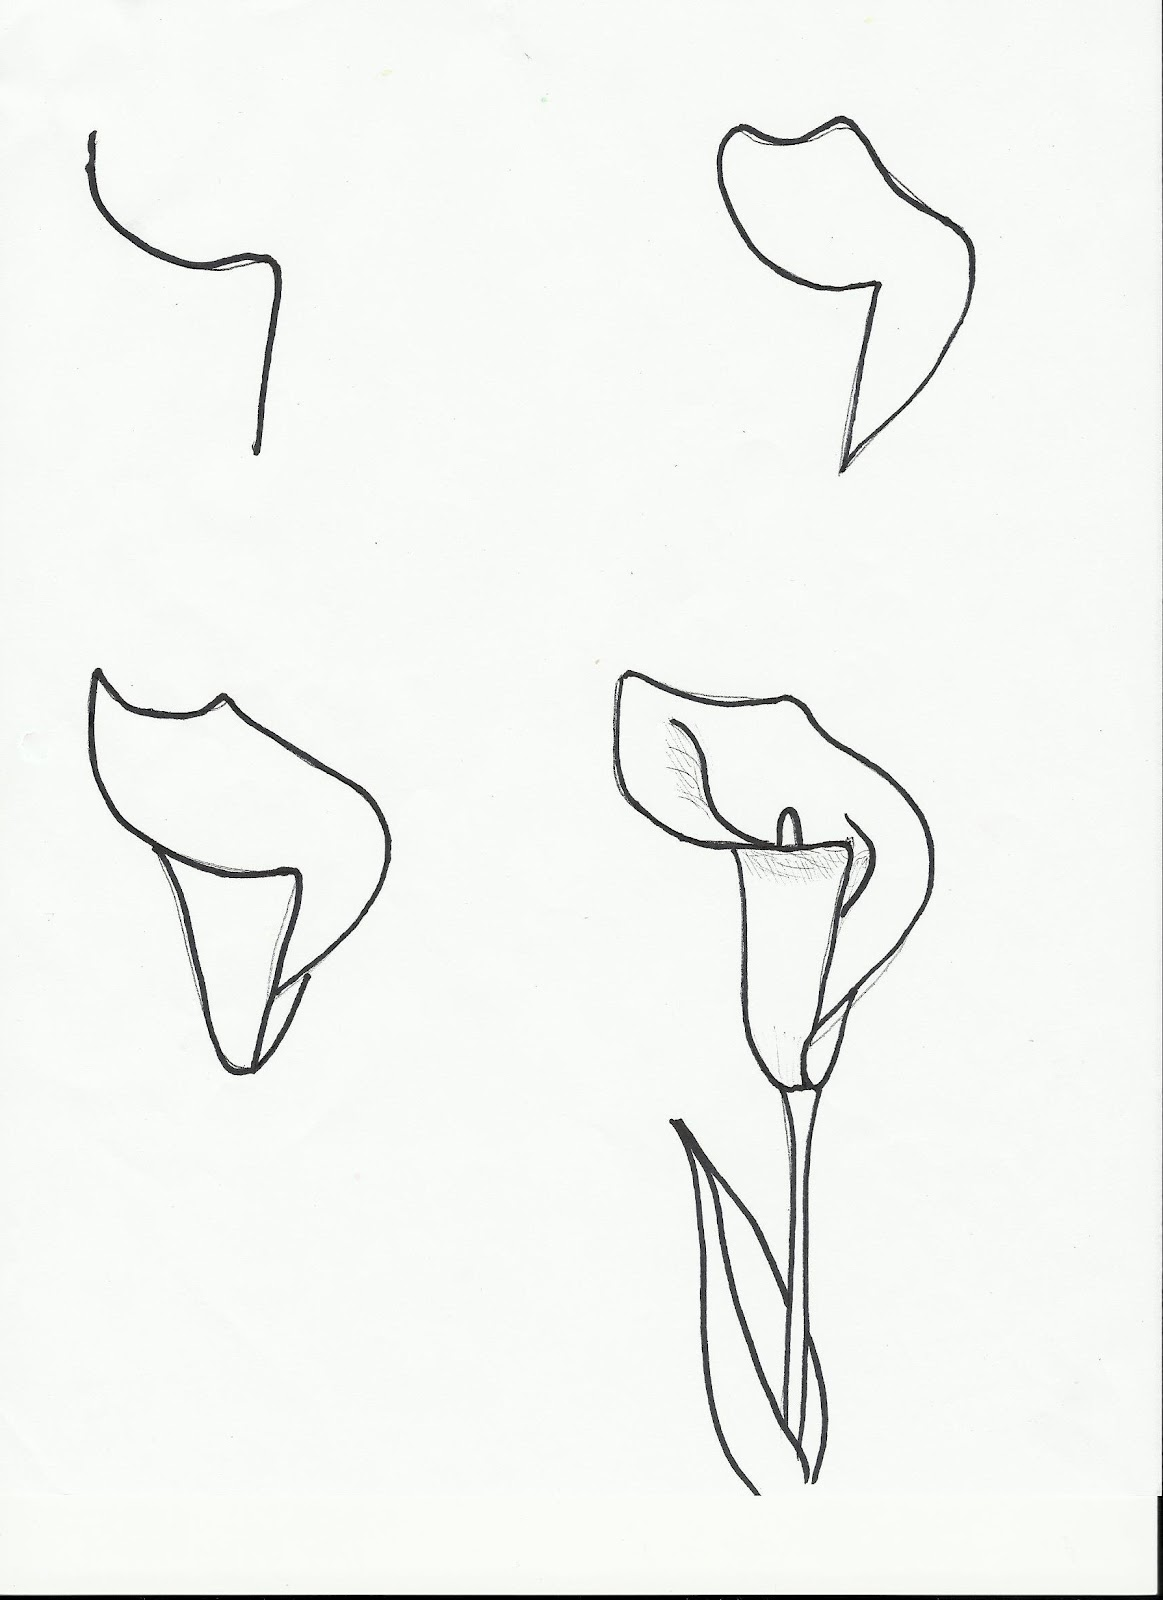 how to draw a lily lily pad drawing at getdrawings free download how a lily draw to